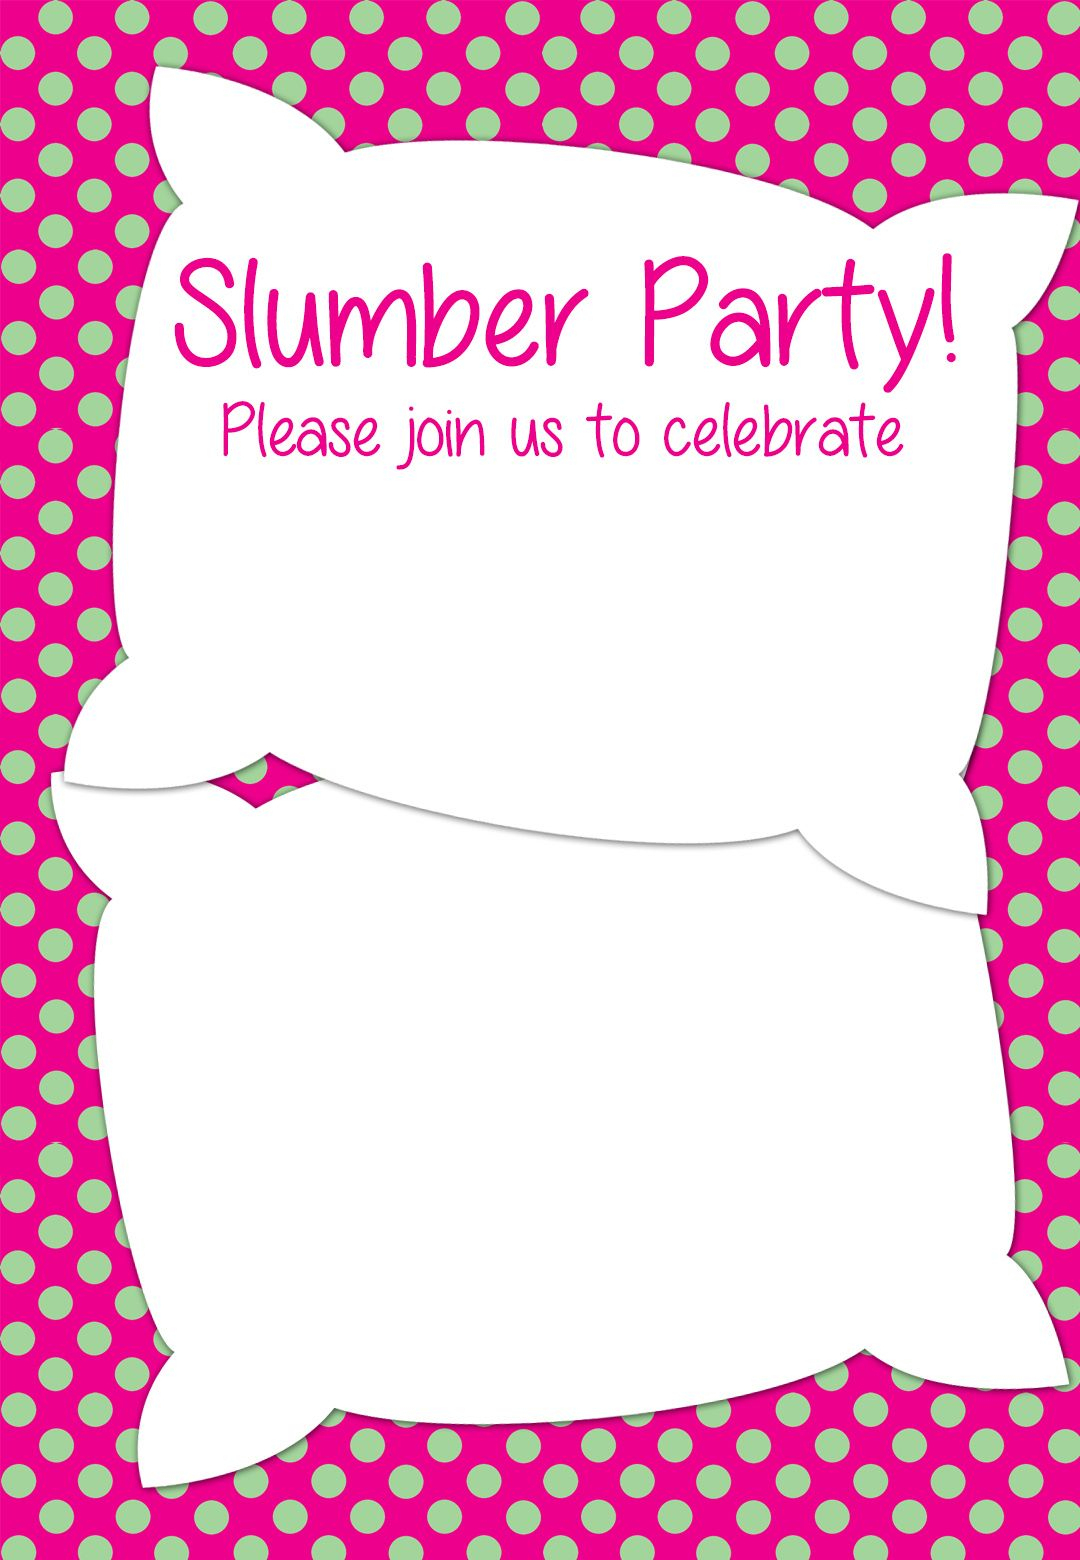 Free Printable Slumber Party Invitation | Party Ideas In 2019 - Free Printable Event Invitations